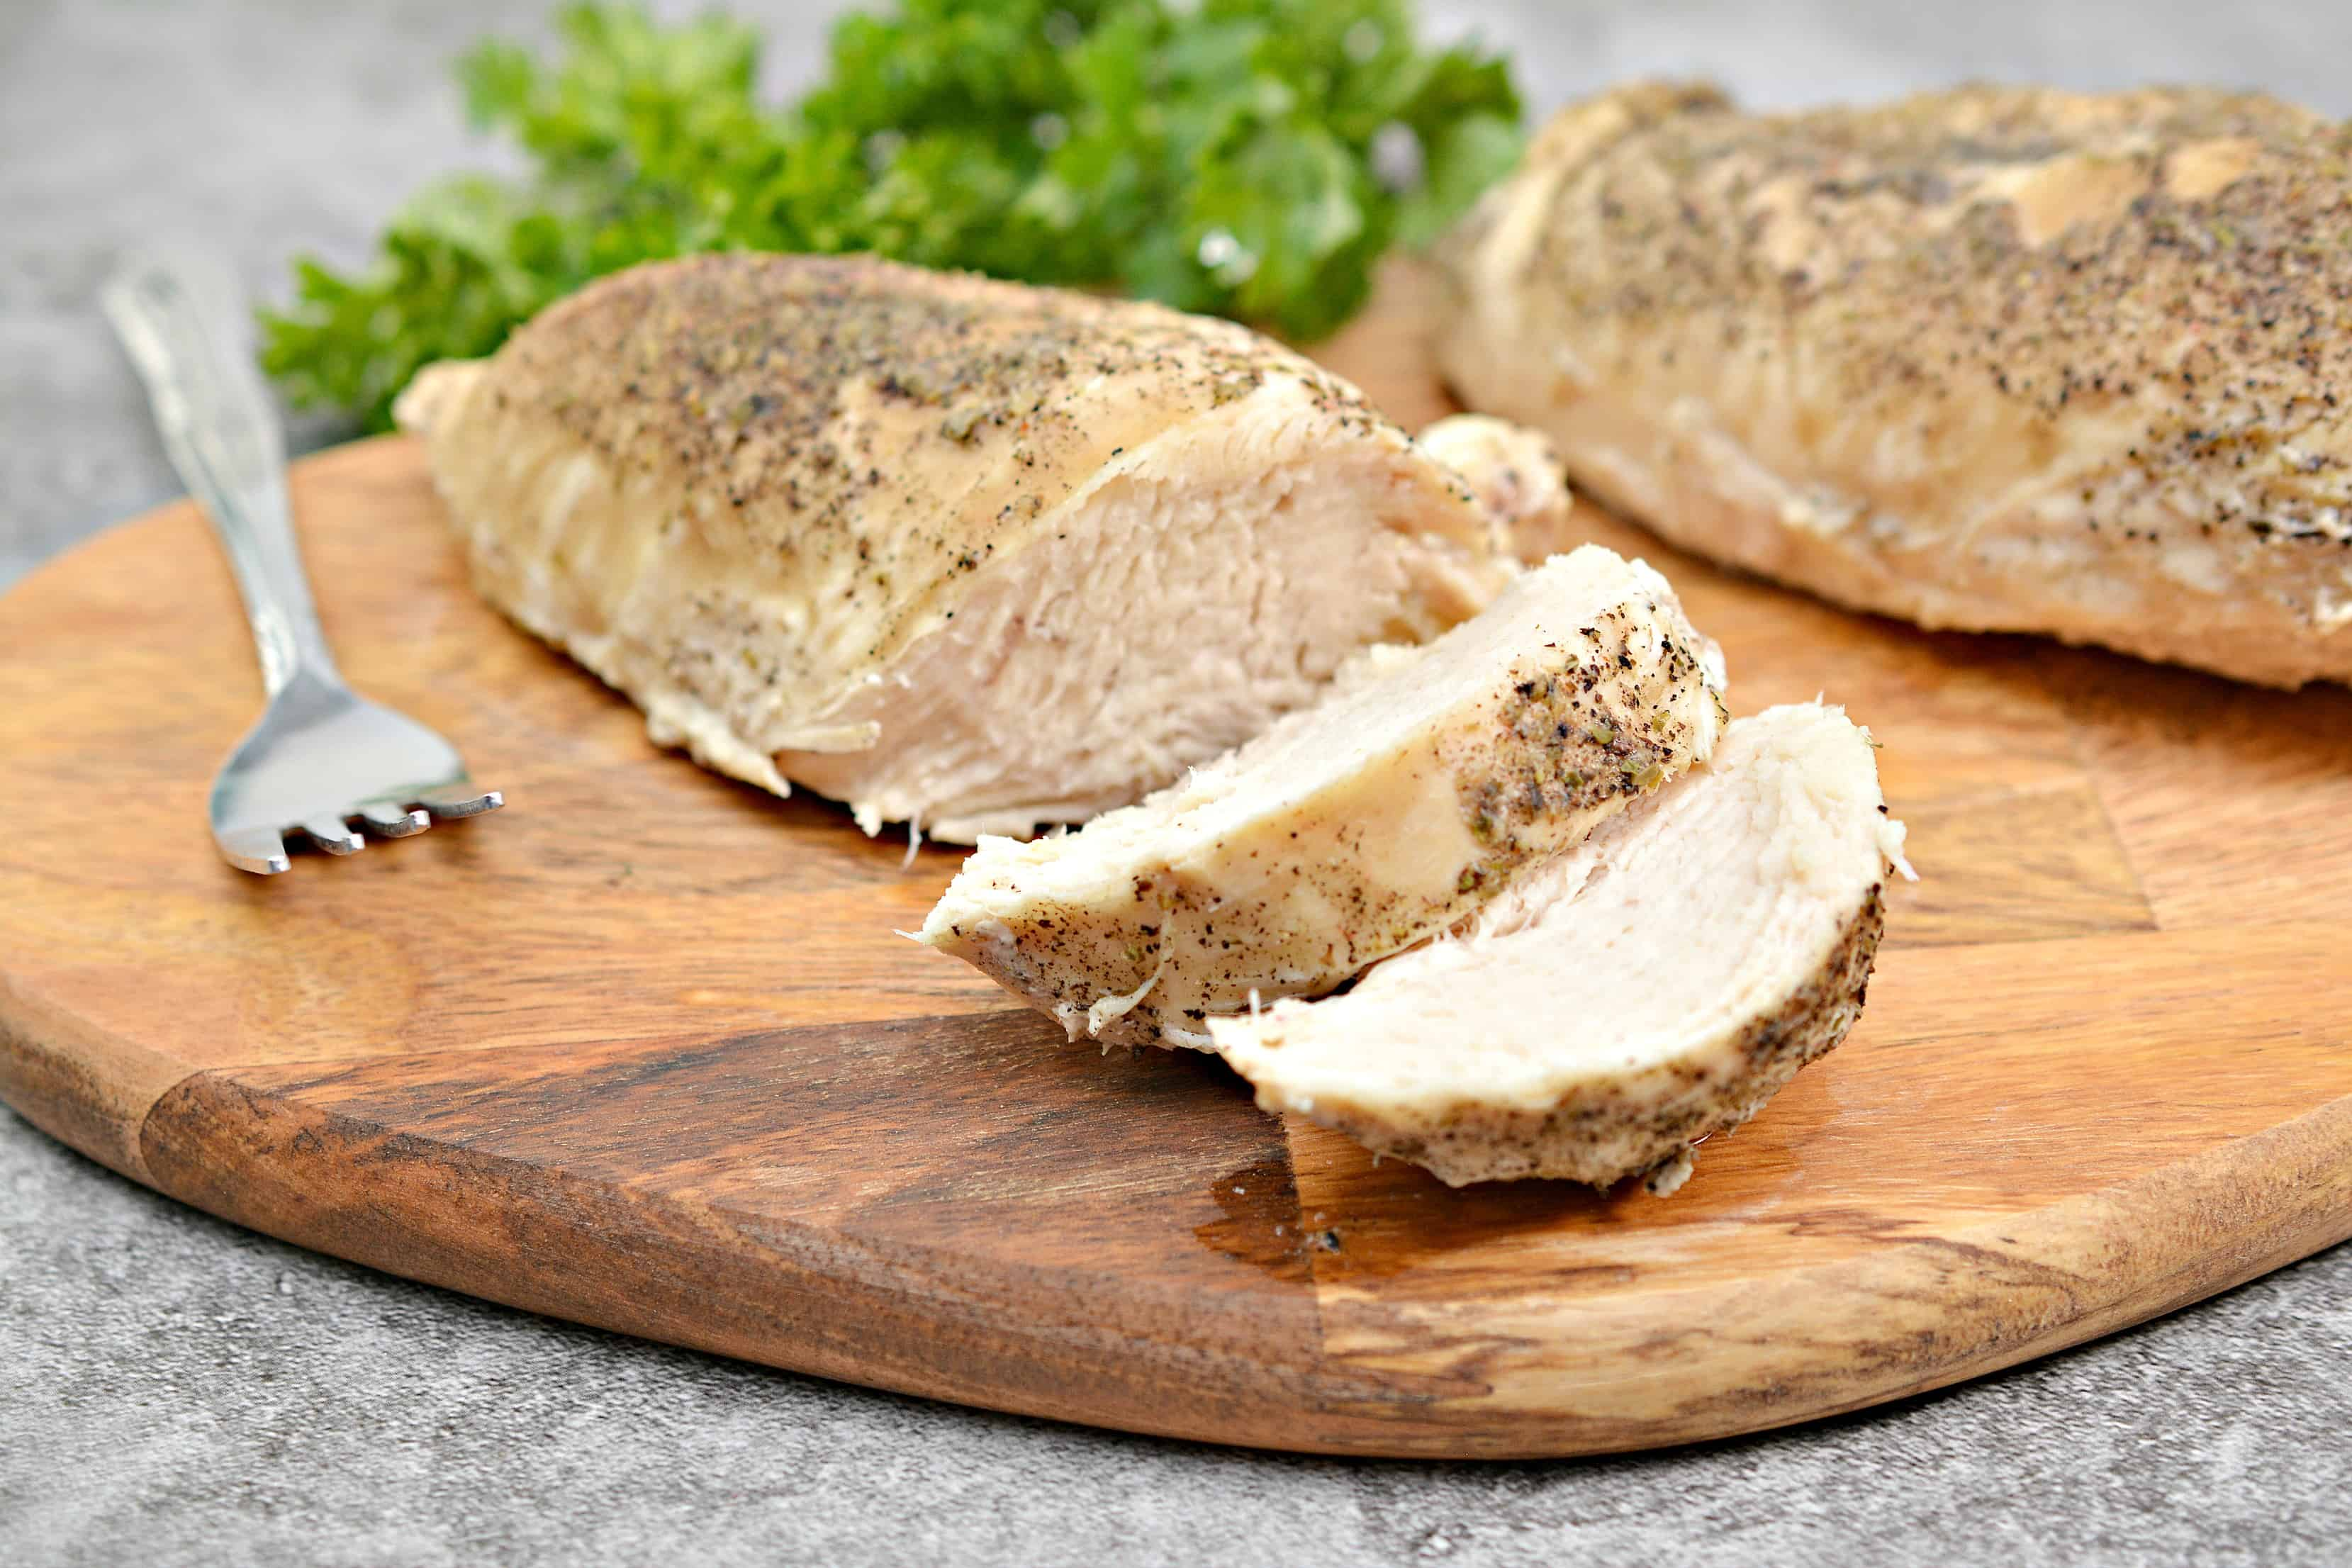 cooked chicken on a cutting board